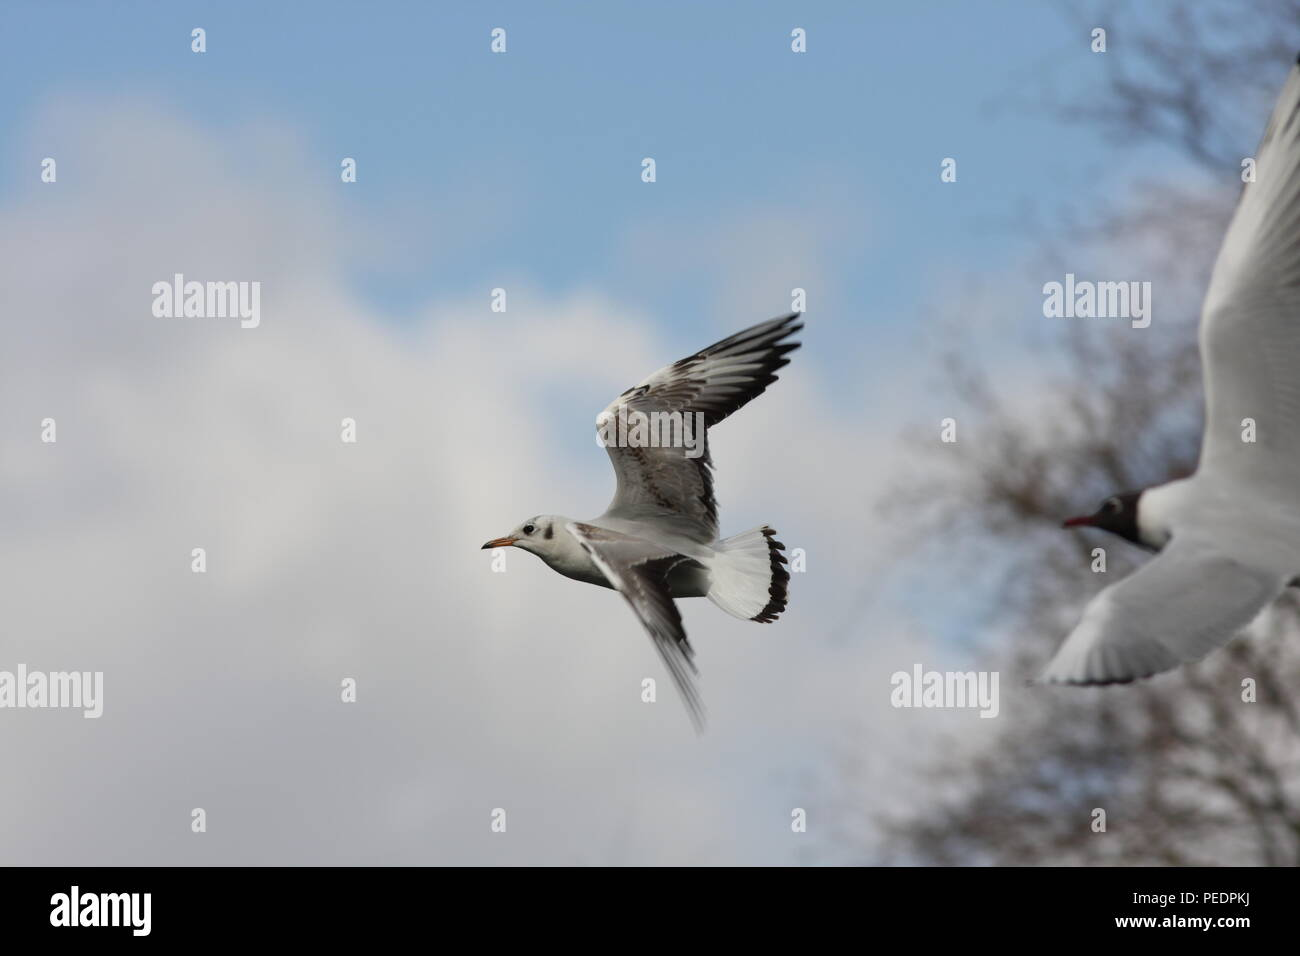 Phasianus colchicus, Black Headed Gull in flight, this 1st winter plumage flying gull is showng the upper wing pattern of this winter gull. - Stock Image